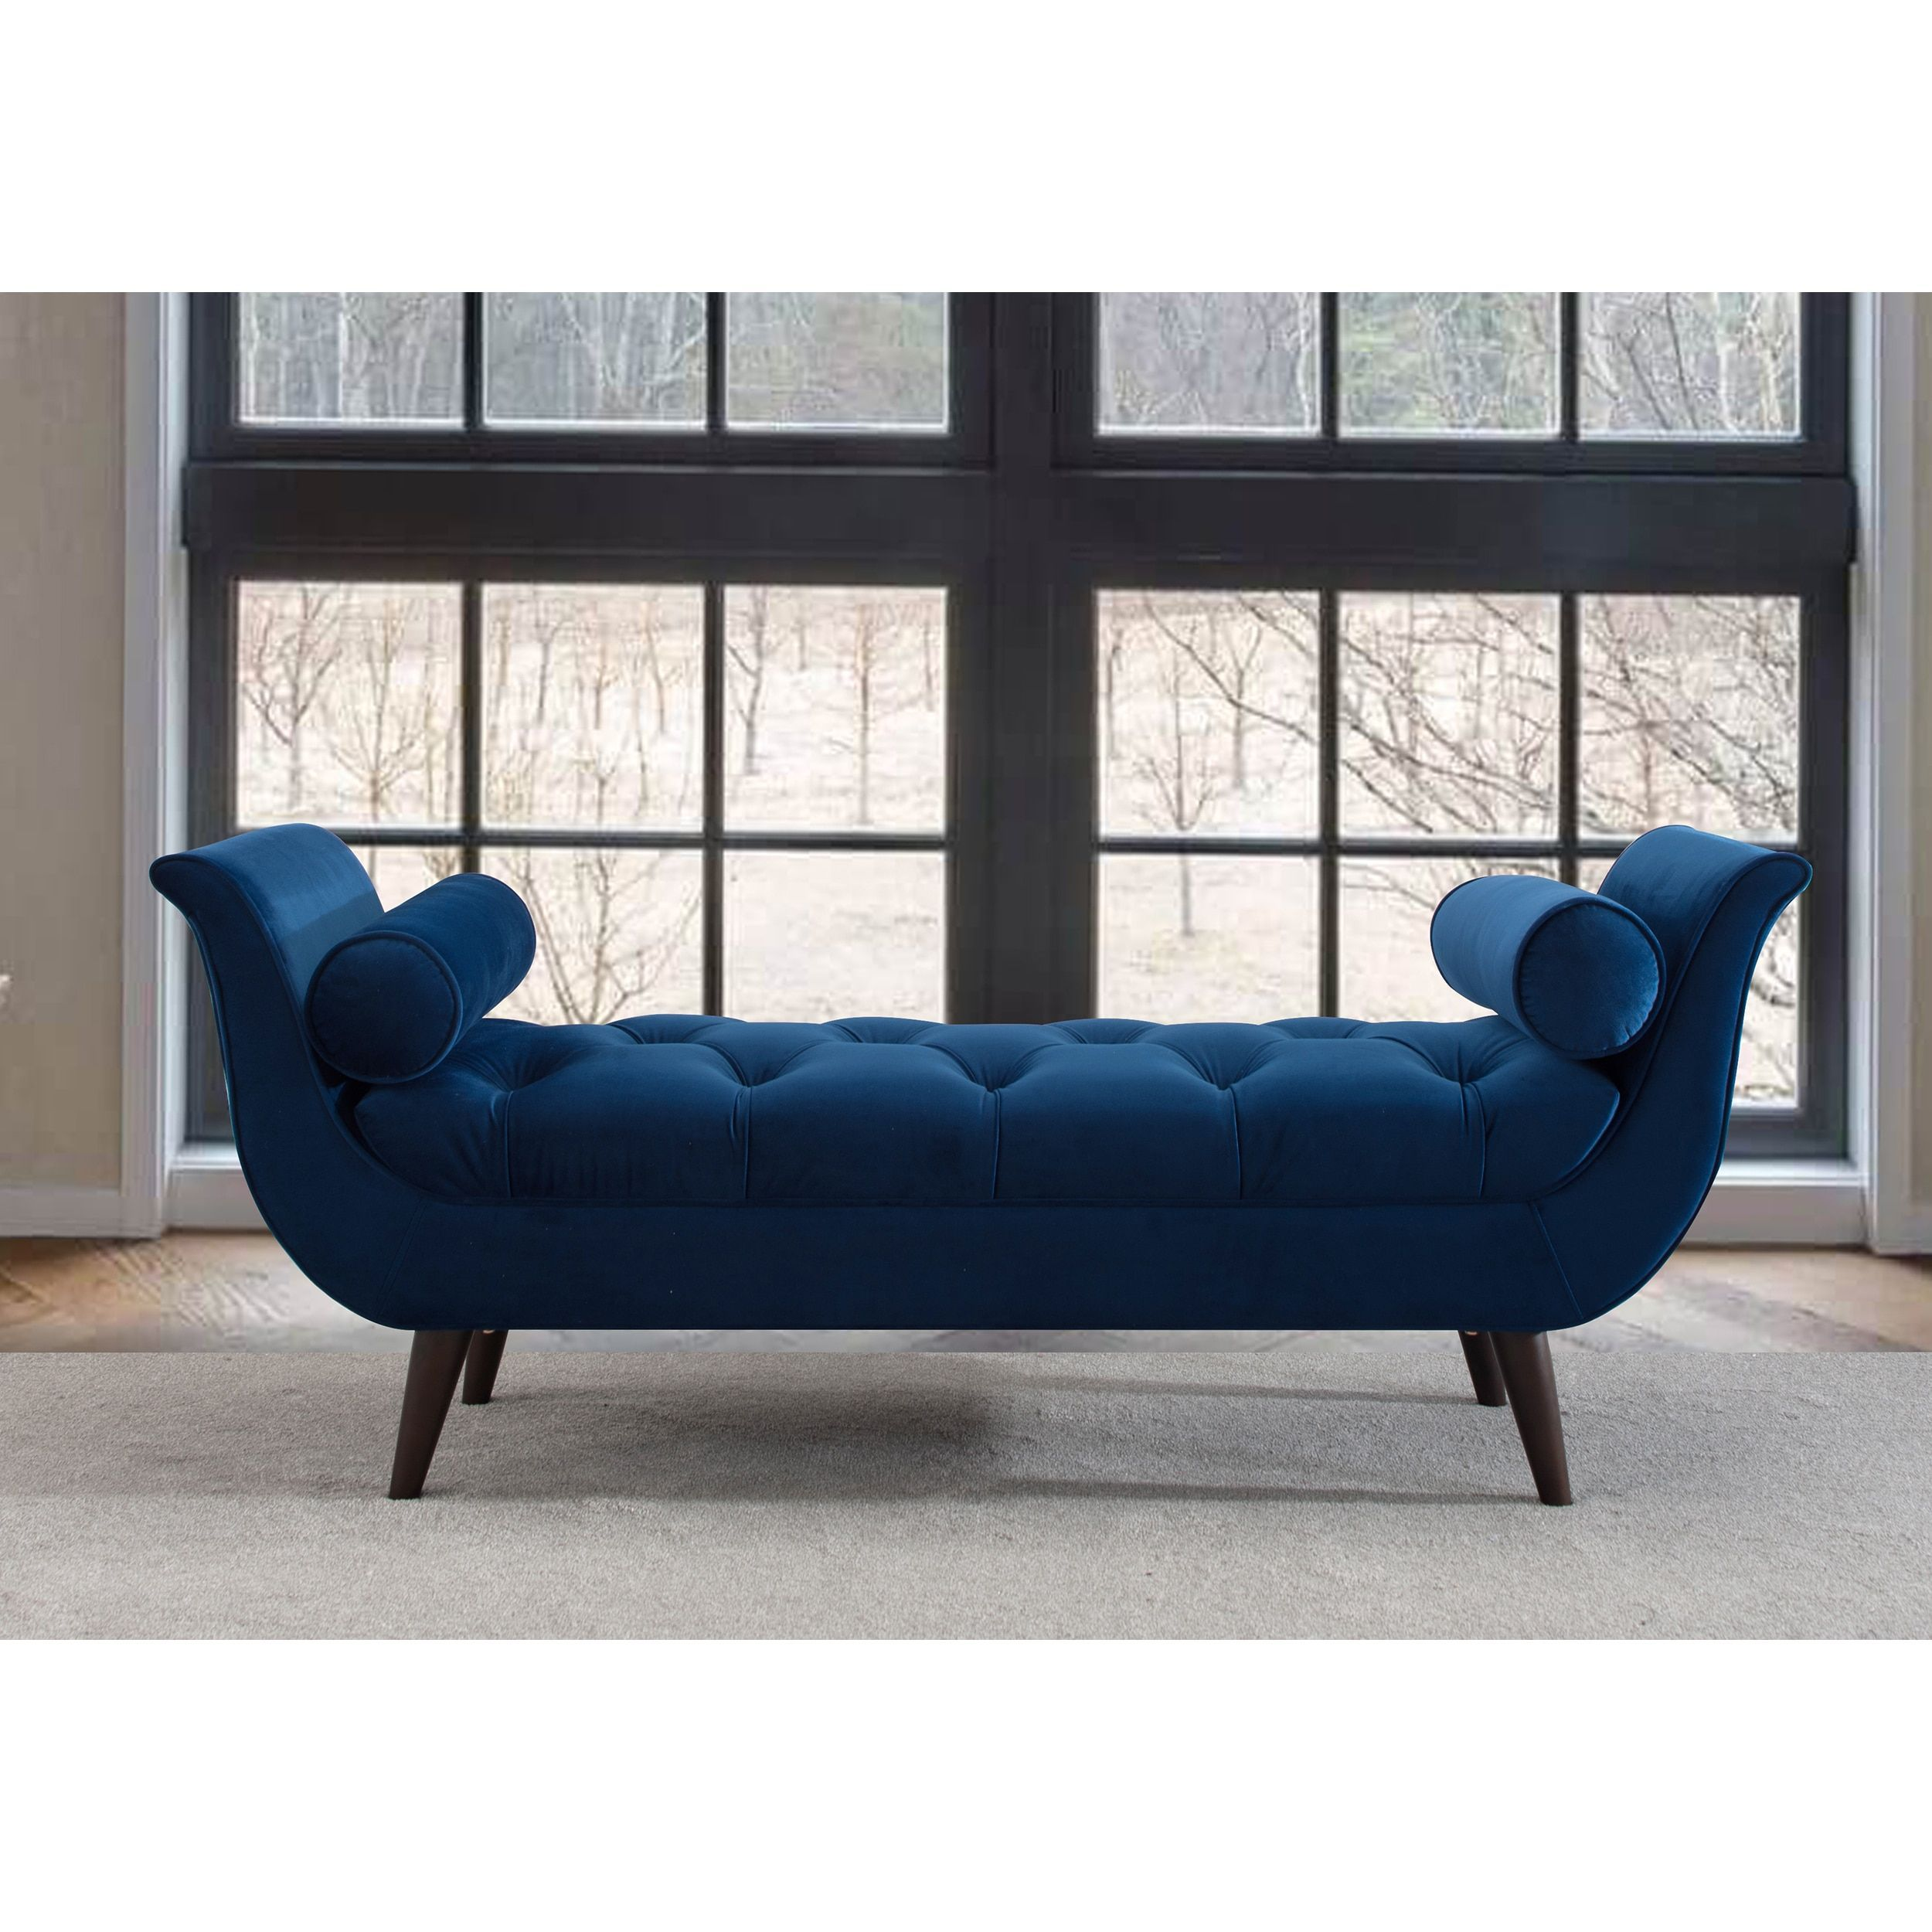 Bedbanken Outlet Jennifer Taylor Alma Tufted Entryway Bench Estate Blue